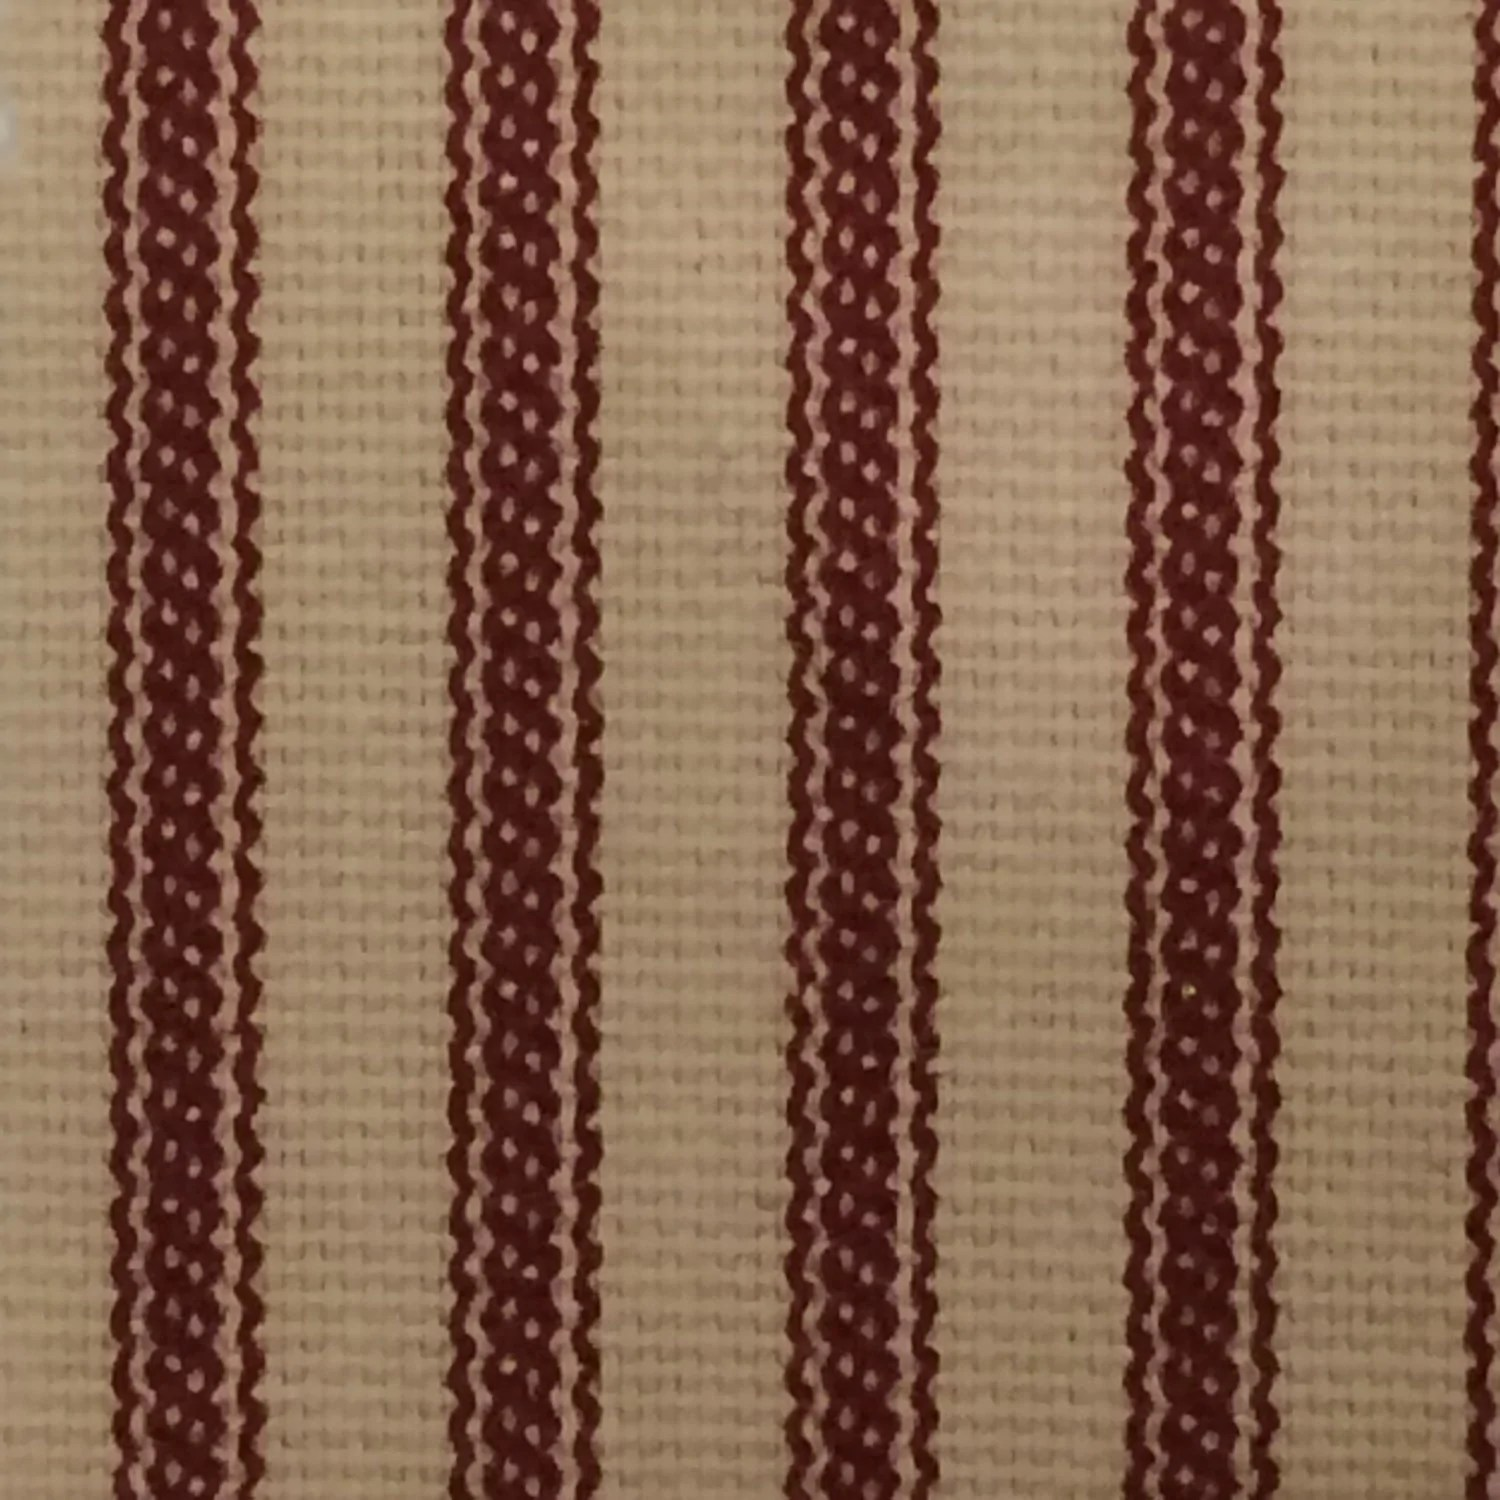 Red And Brown Shower Curtain Ticking Stripe Shower Curtain Black Brown Grey Navy Red 72x72 Or Custom Size